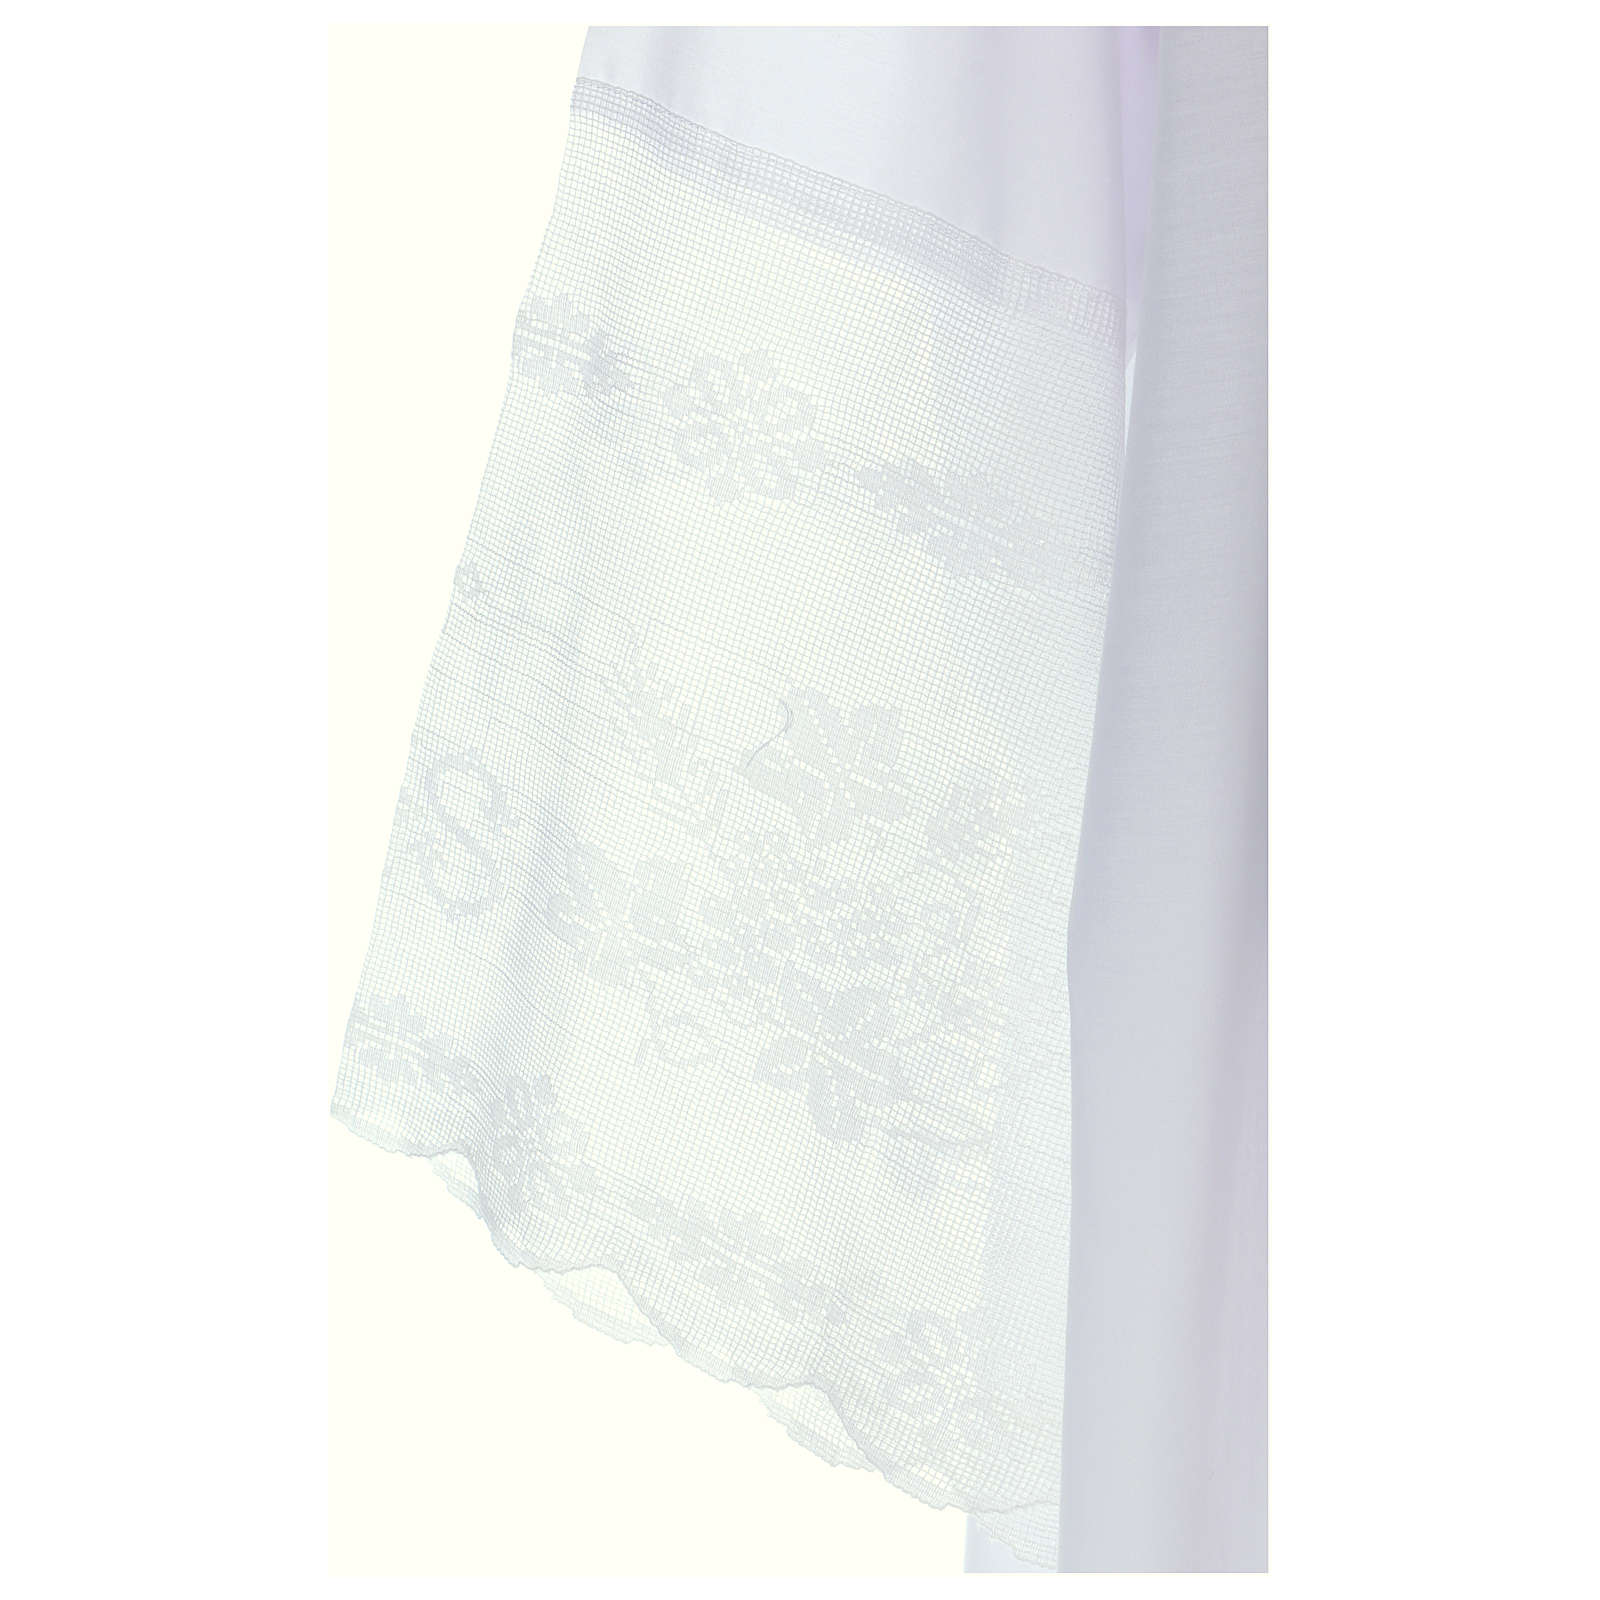 Alb in cotton blend with square neckline, goffer and IHS lace 4